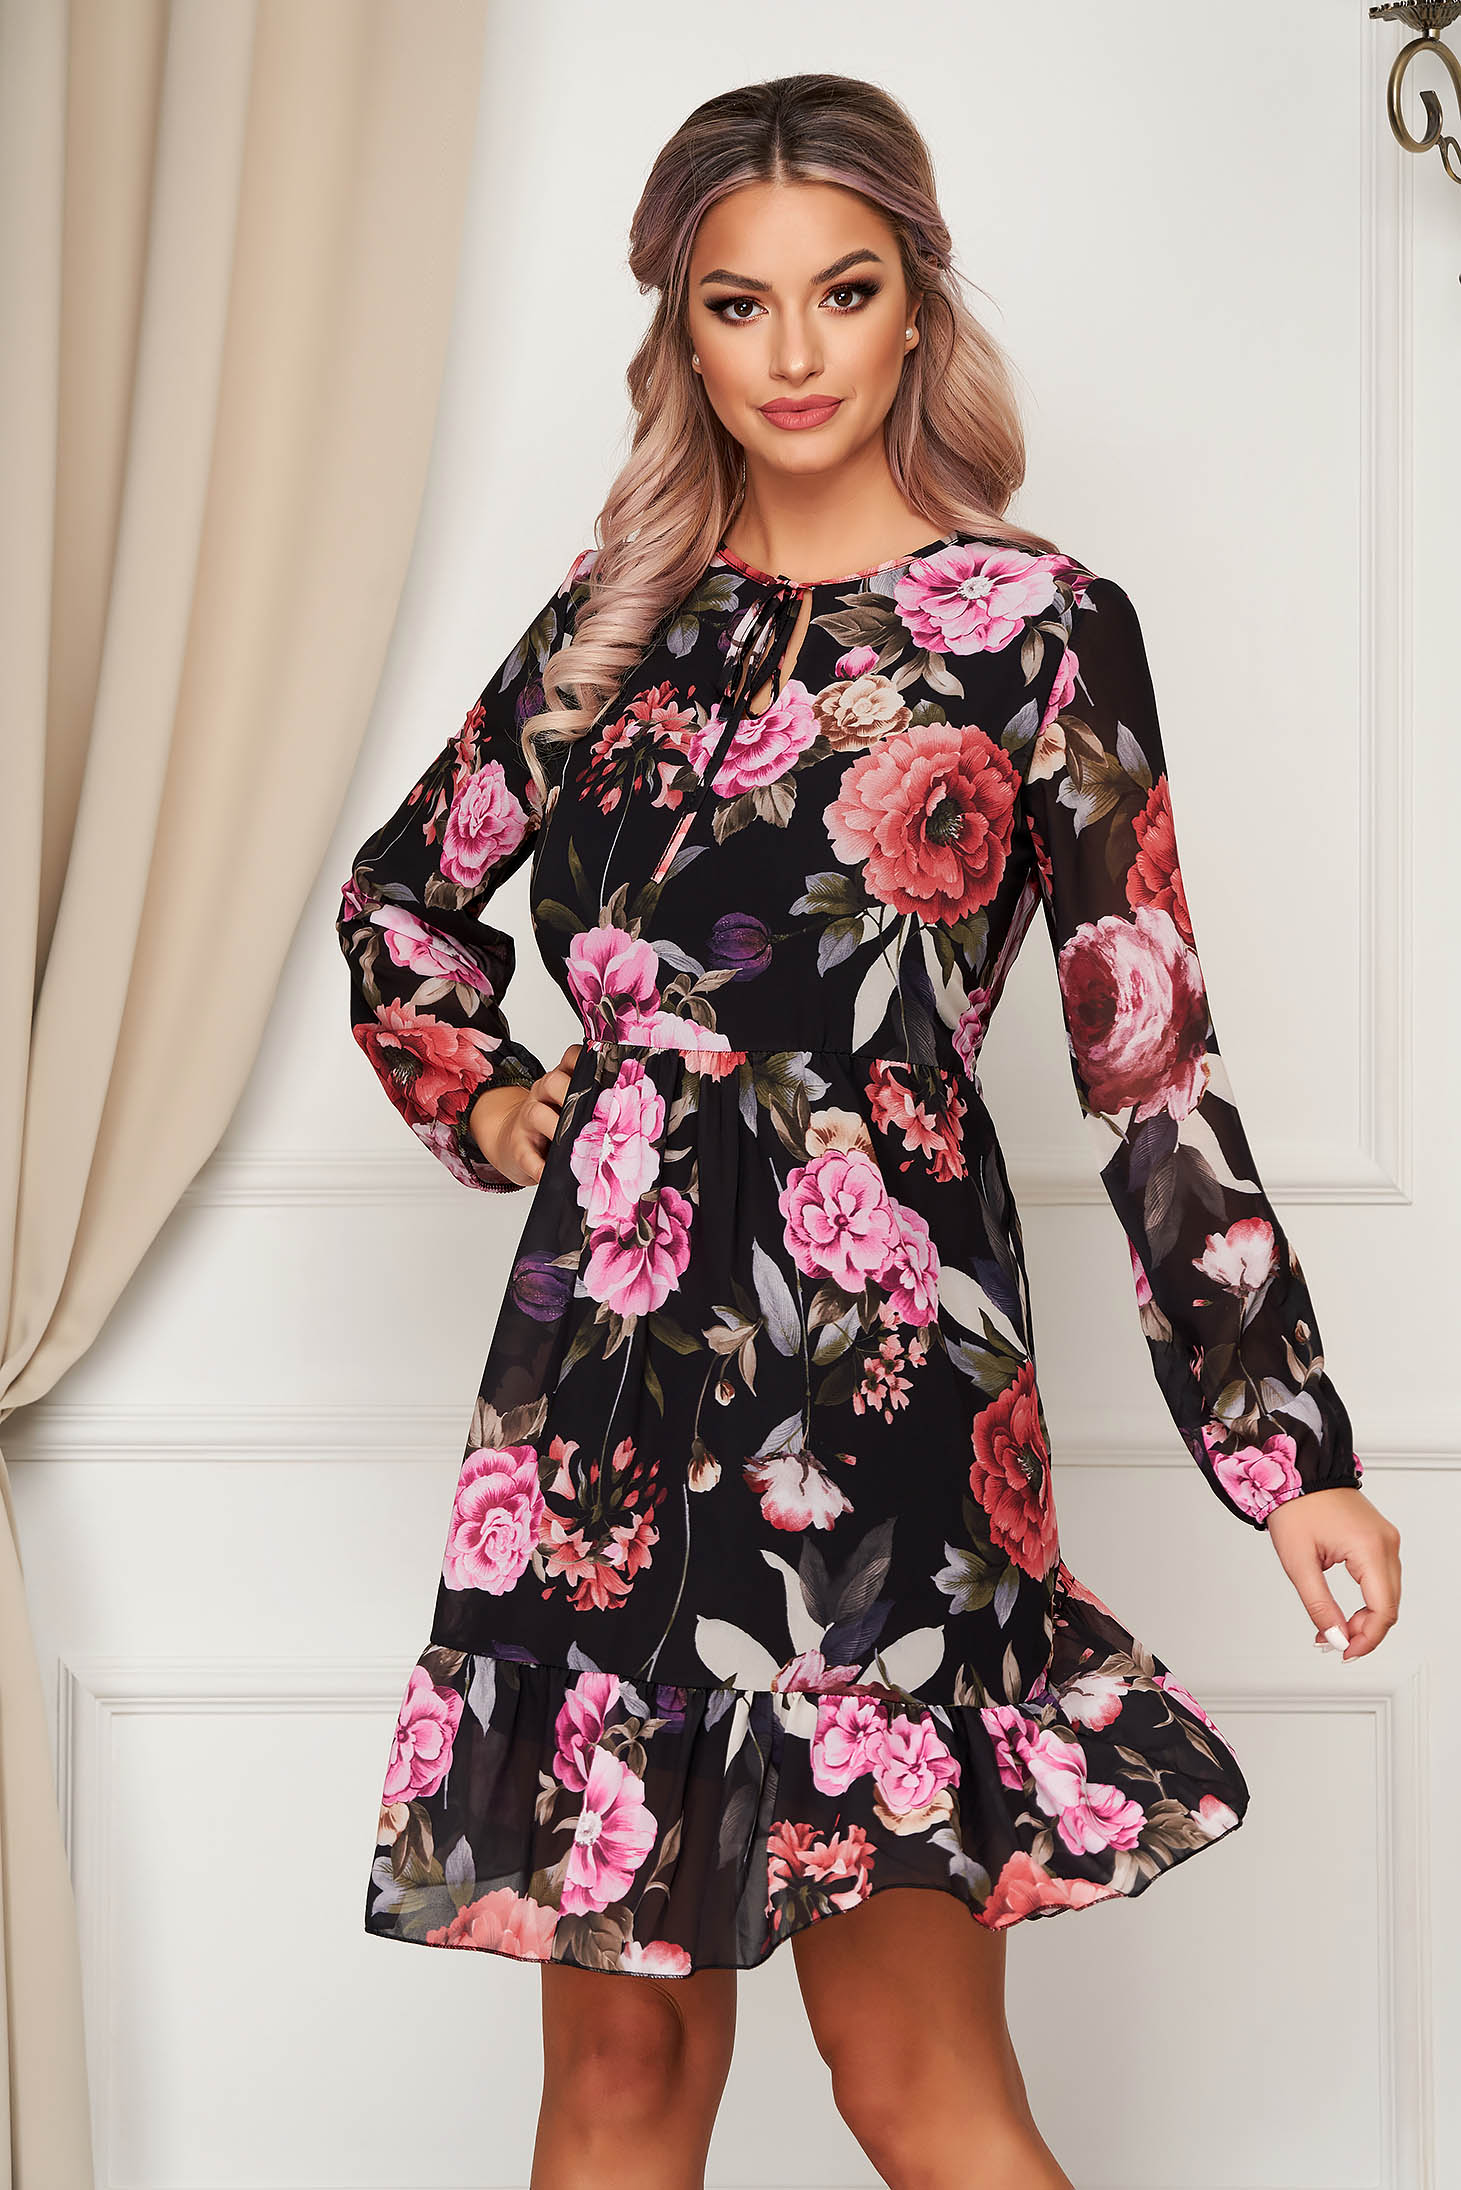 Dress short cut daily from veil fabric flared with floral prints